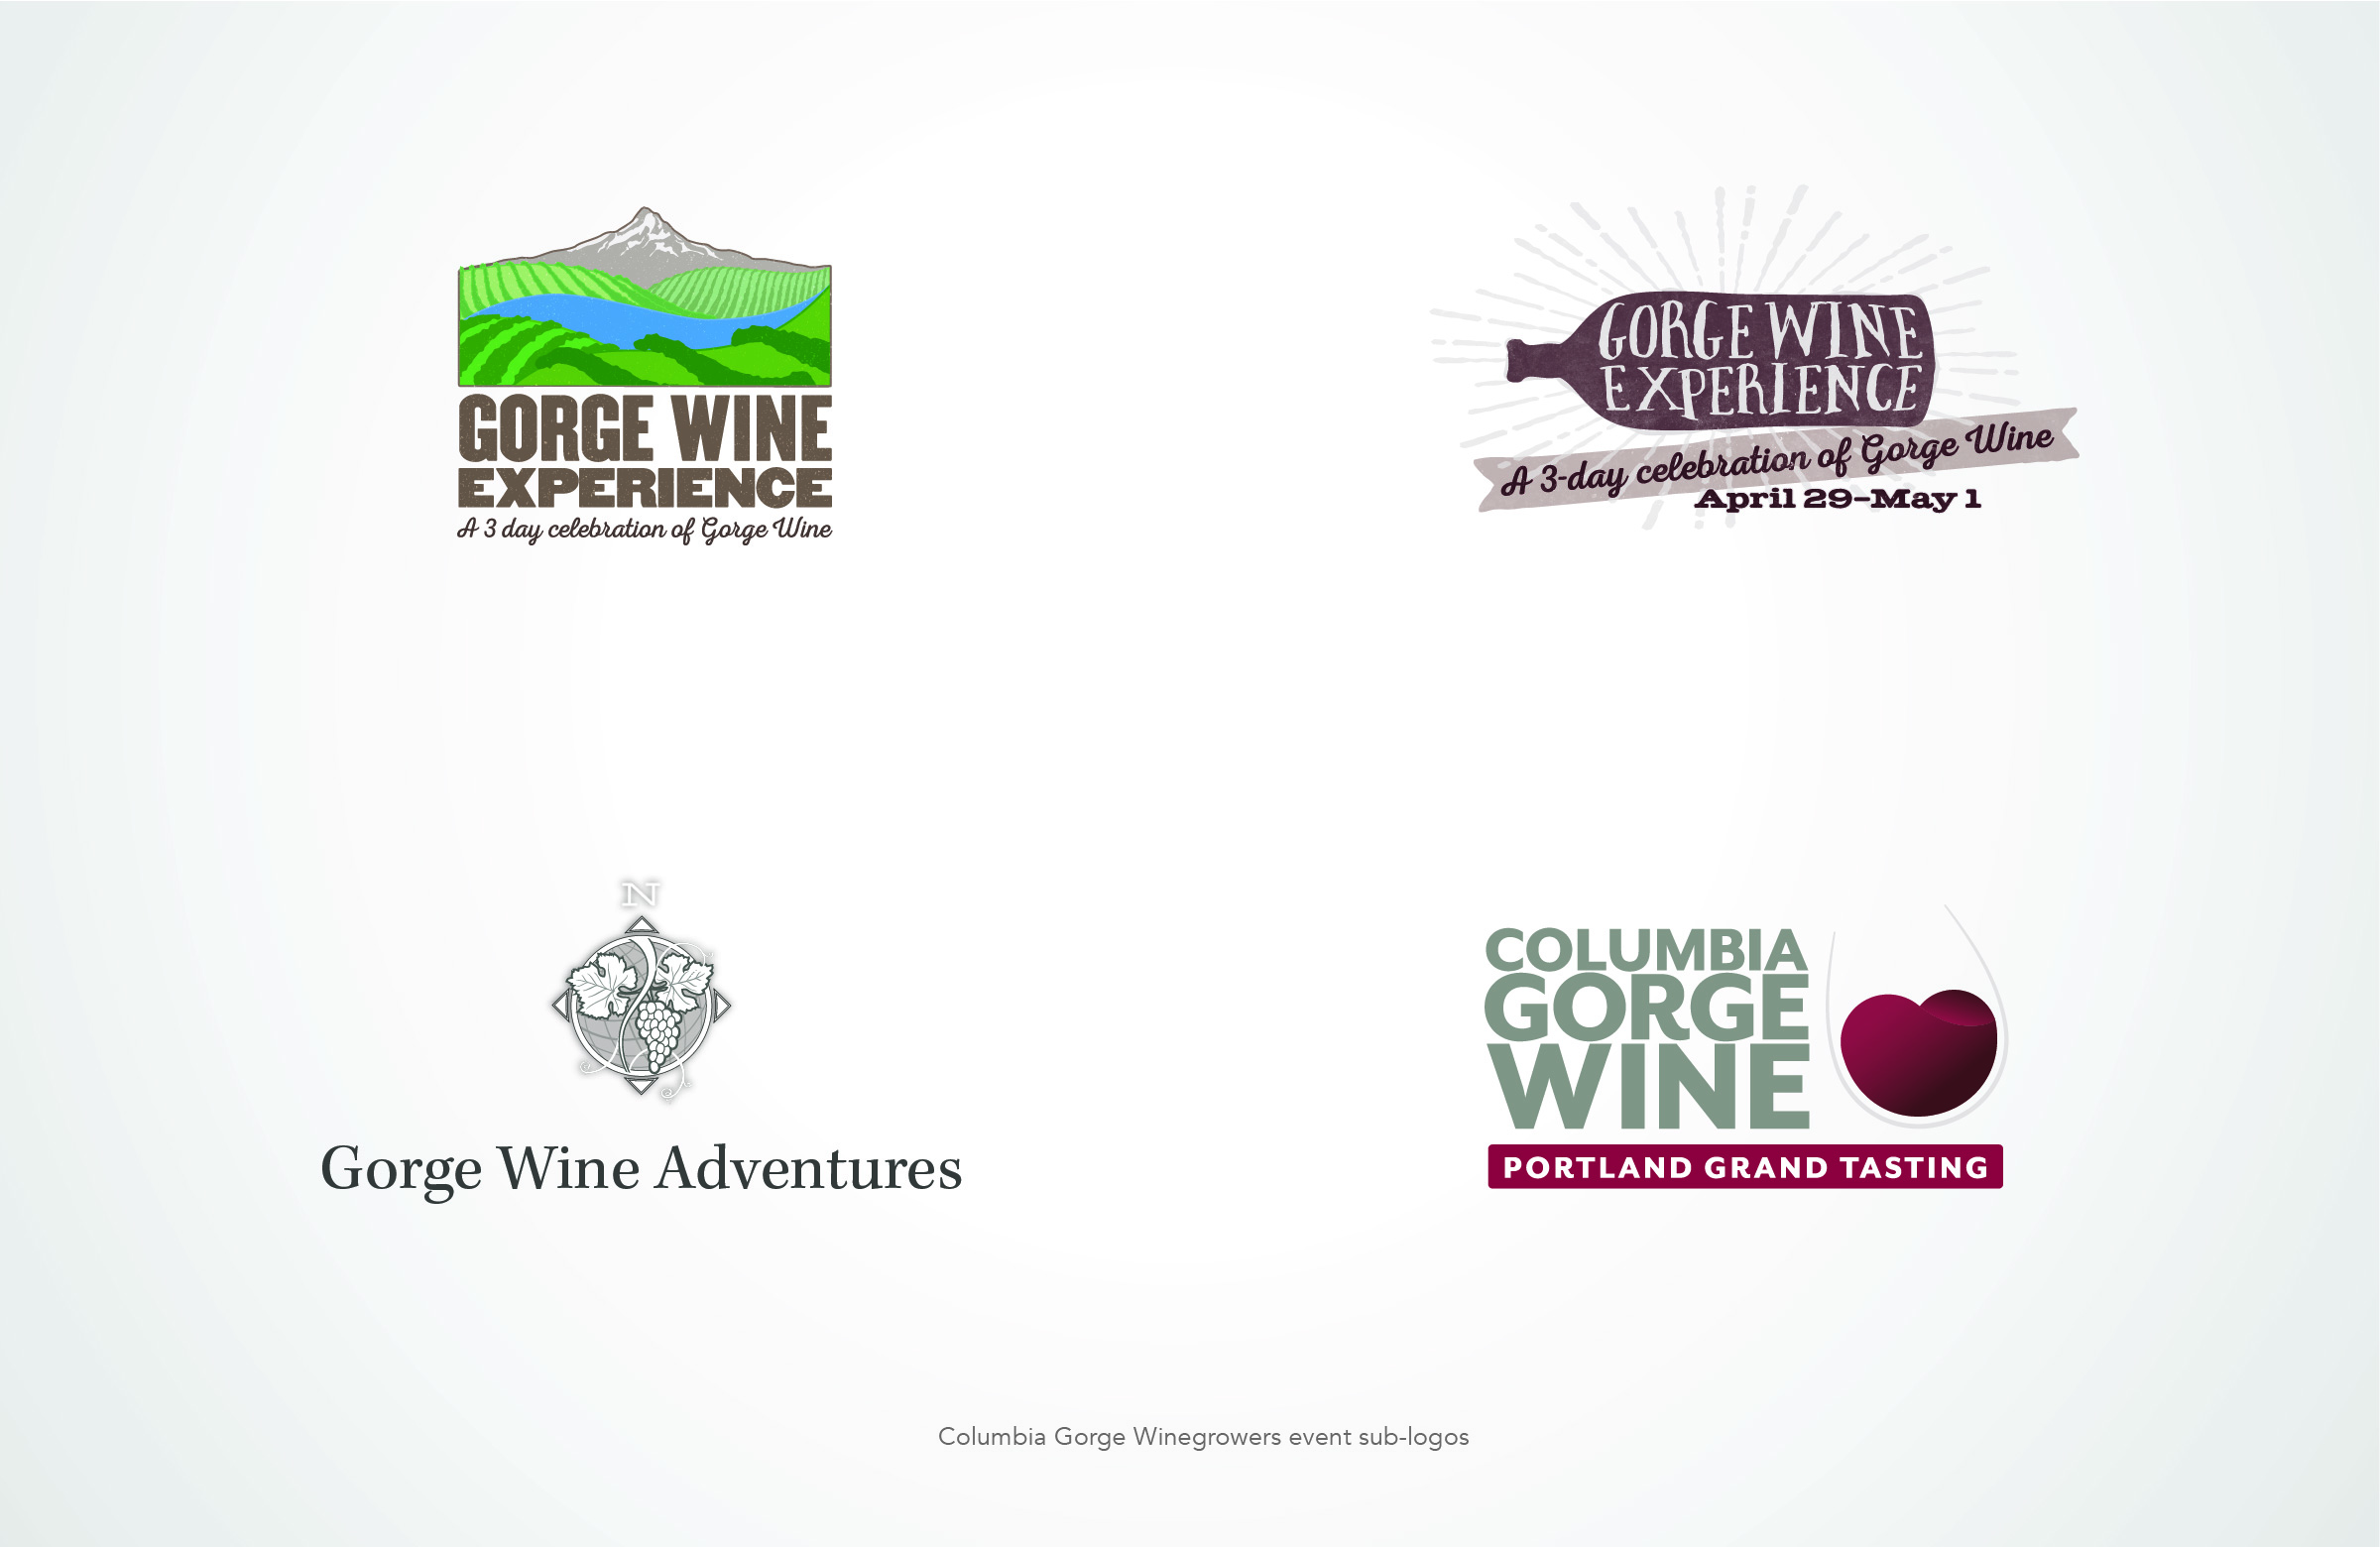 One of the worlds most unique wine growing regions, with the ability to grow almost any grape, I worked with this organization over 8 years to define its market in the US and the world for it's members. Working with a winery and growers association to develop a brand and reach out to their target markets promoting the Columbia Gorge wine region. Starting with research and rebranding, then extending that new branding out to print advertising, billboards, wine show booth signage and collateral, Web design and development, AVA wide winery event promotion and print collateral, yearly AVA Maps, media kits, and more.